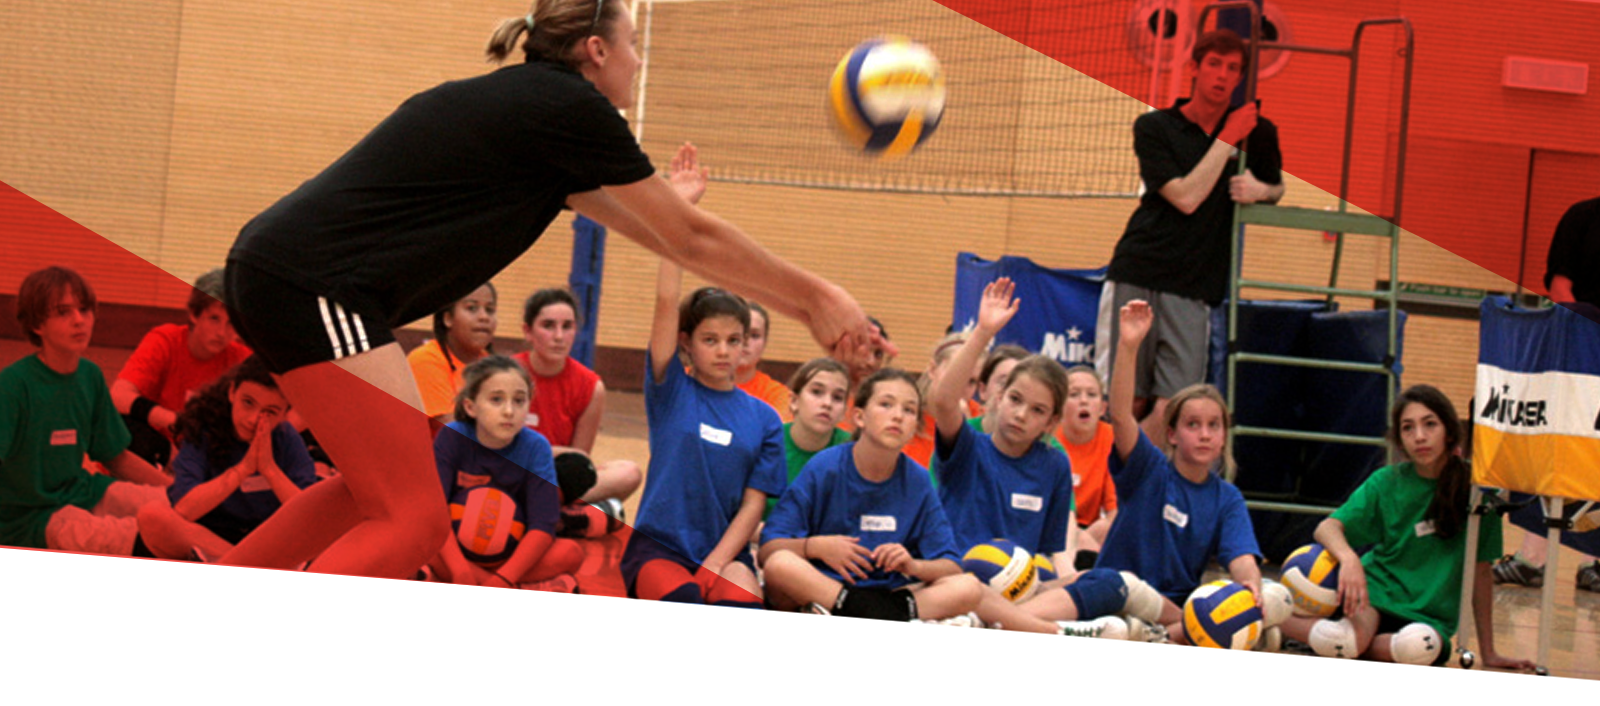 vbdc volleyball coaching